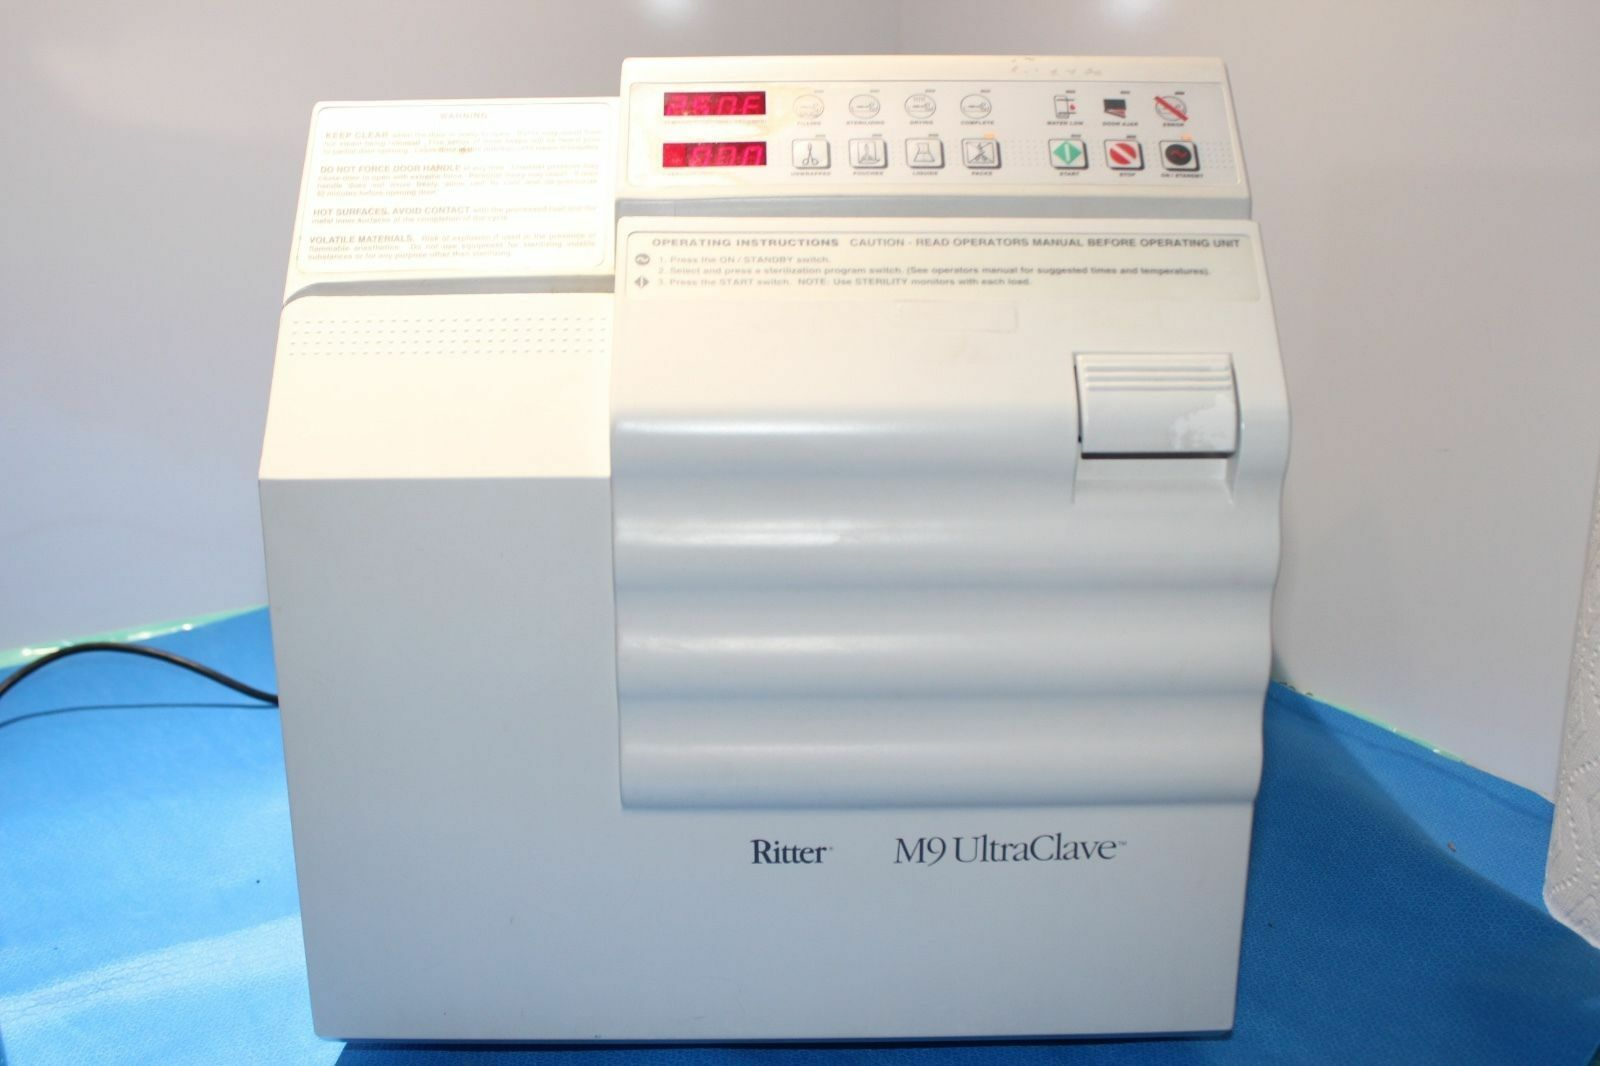 Midmark M9 Ultraclave Dental Steam Autoclave Sterilizer for Instruments |  eBay